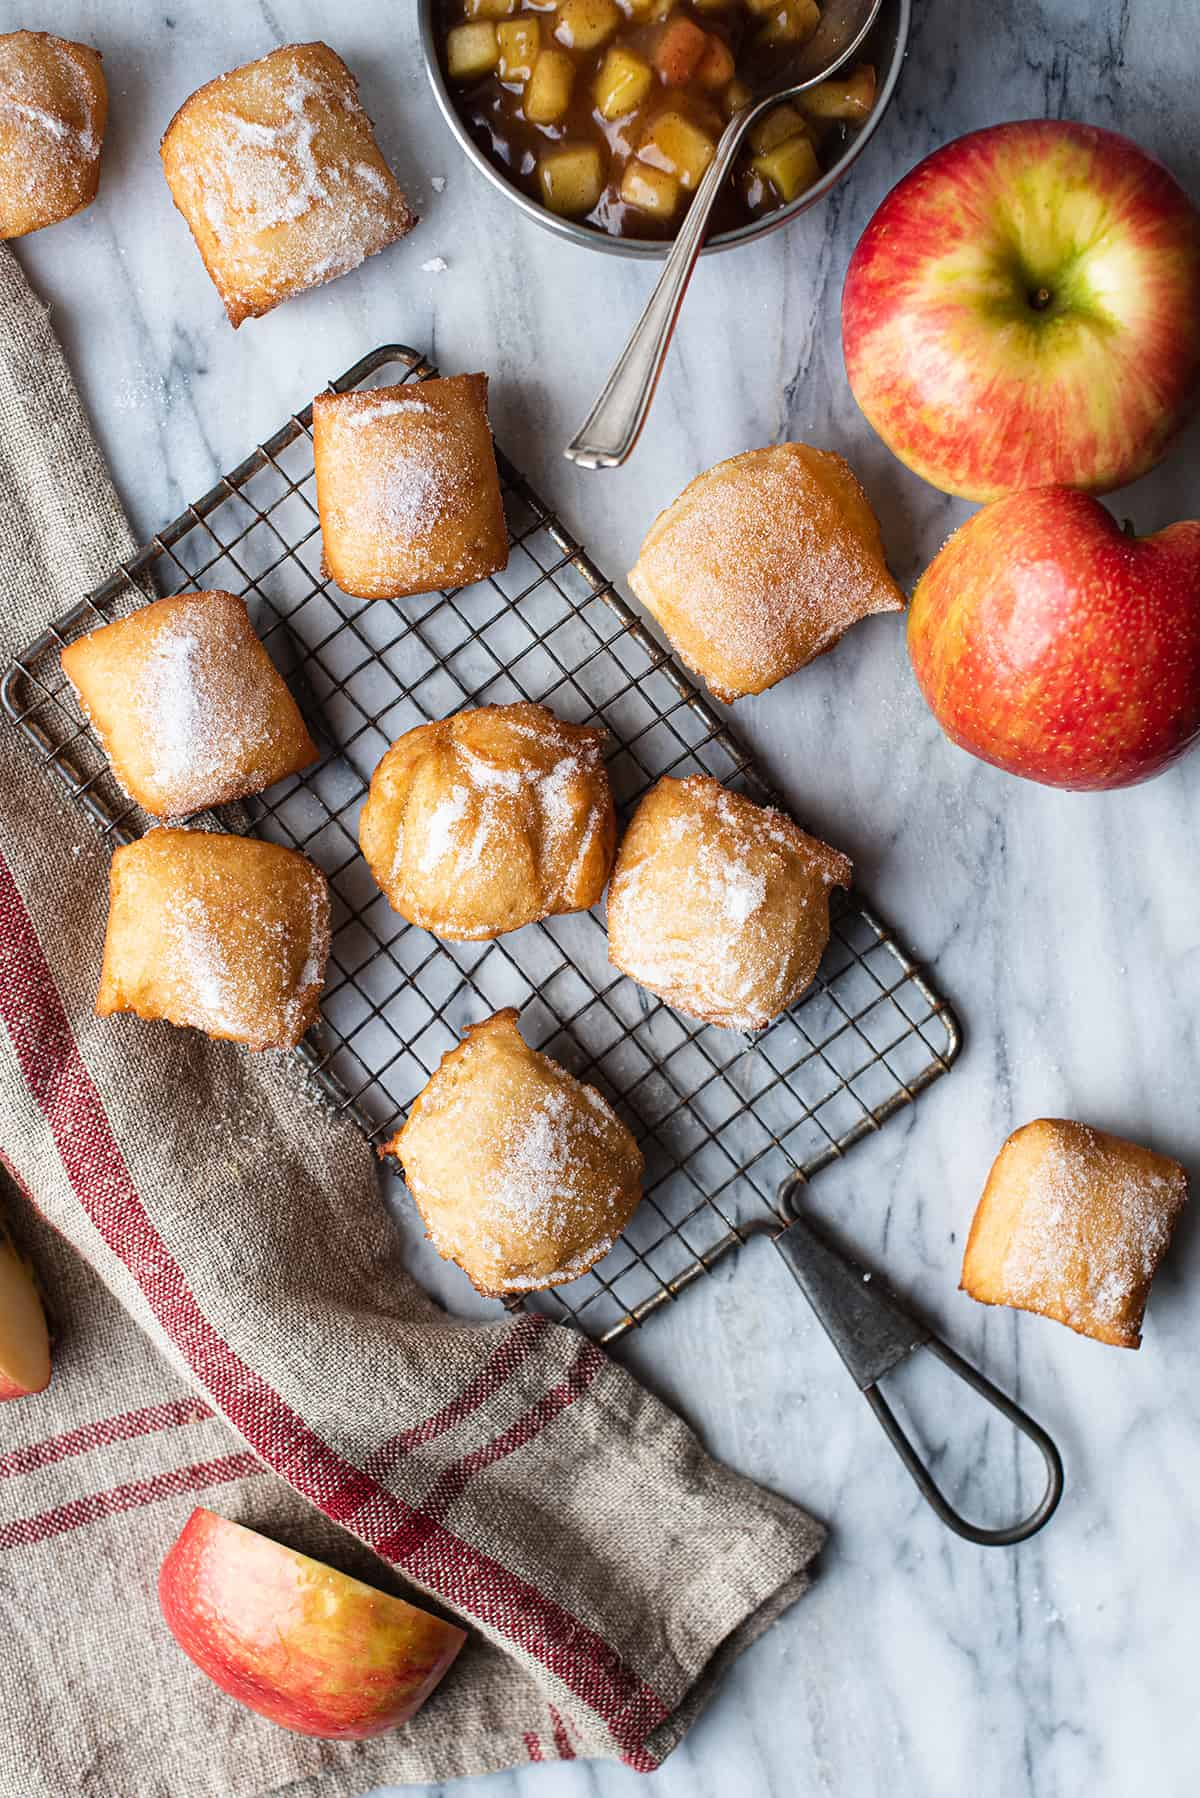 apple beignet bites on wire tray with linen napkin + apples